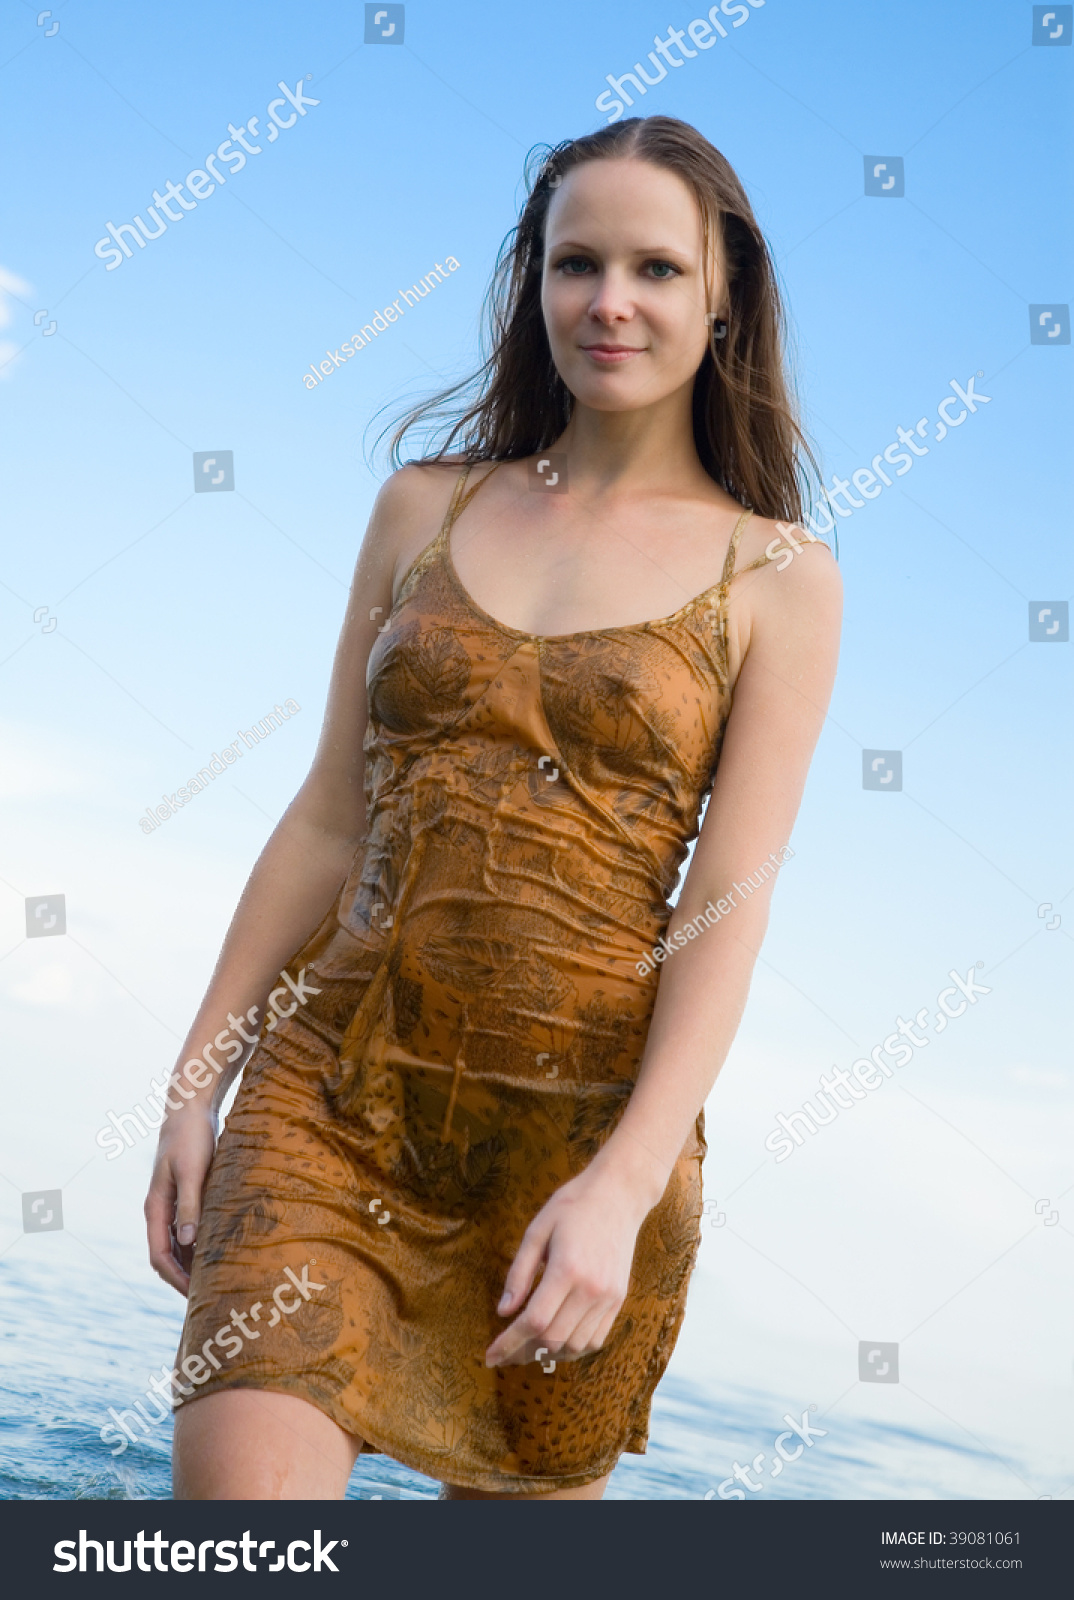 Beautiful Girl In Wet Dress Goes On Shore Stock Photo.